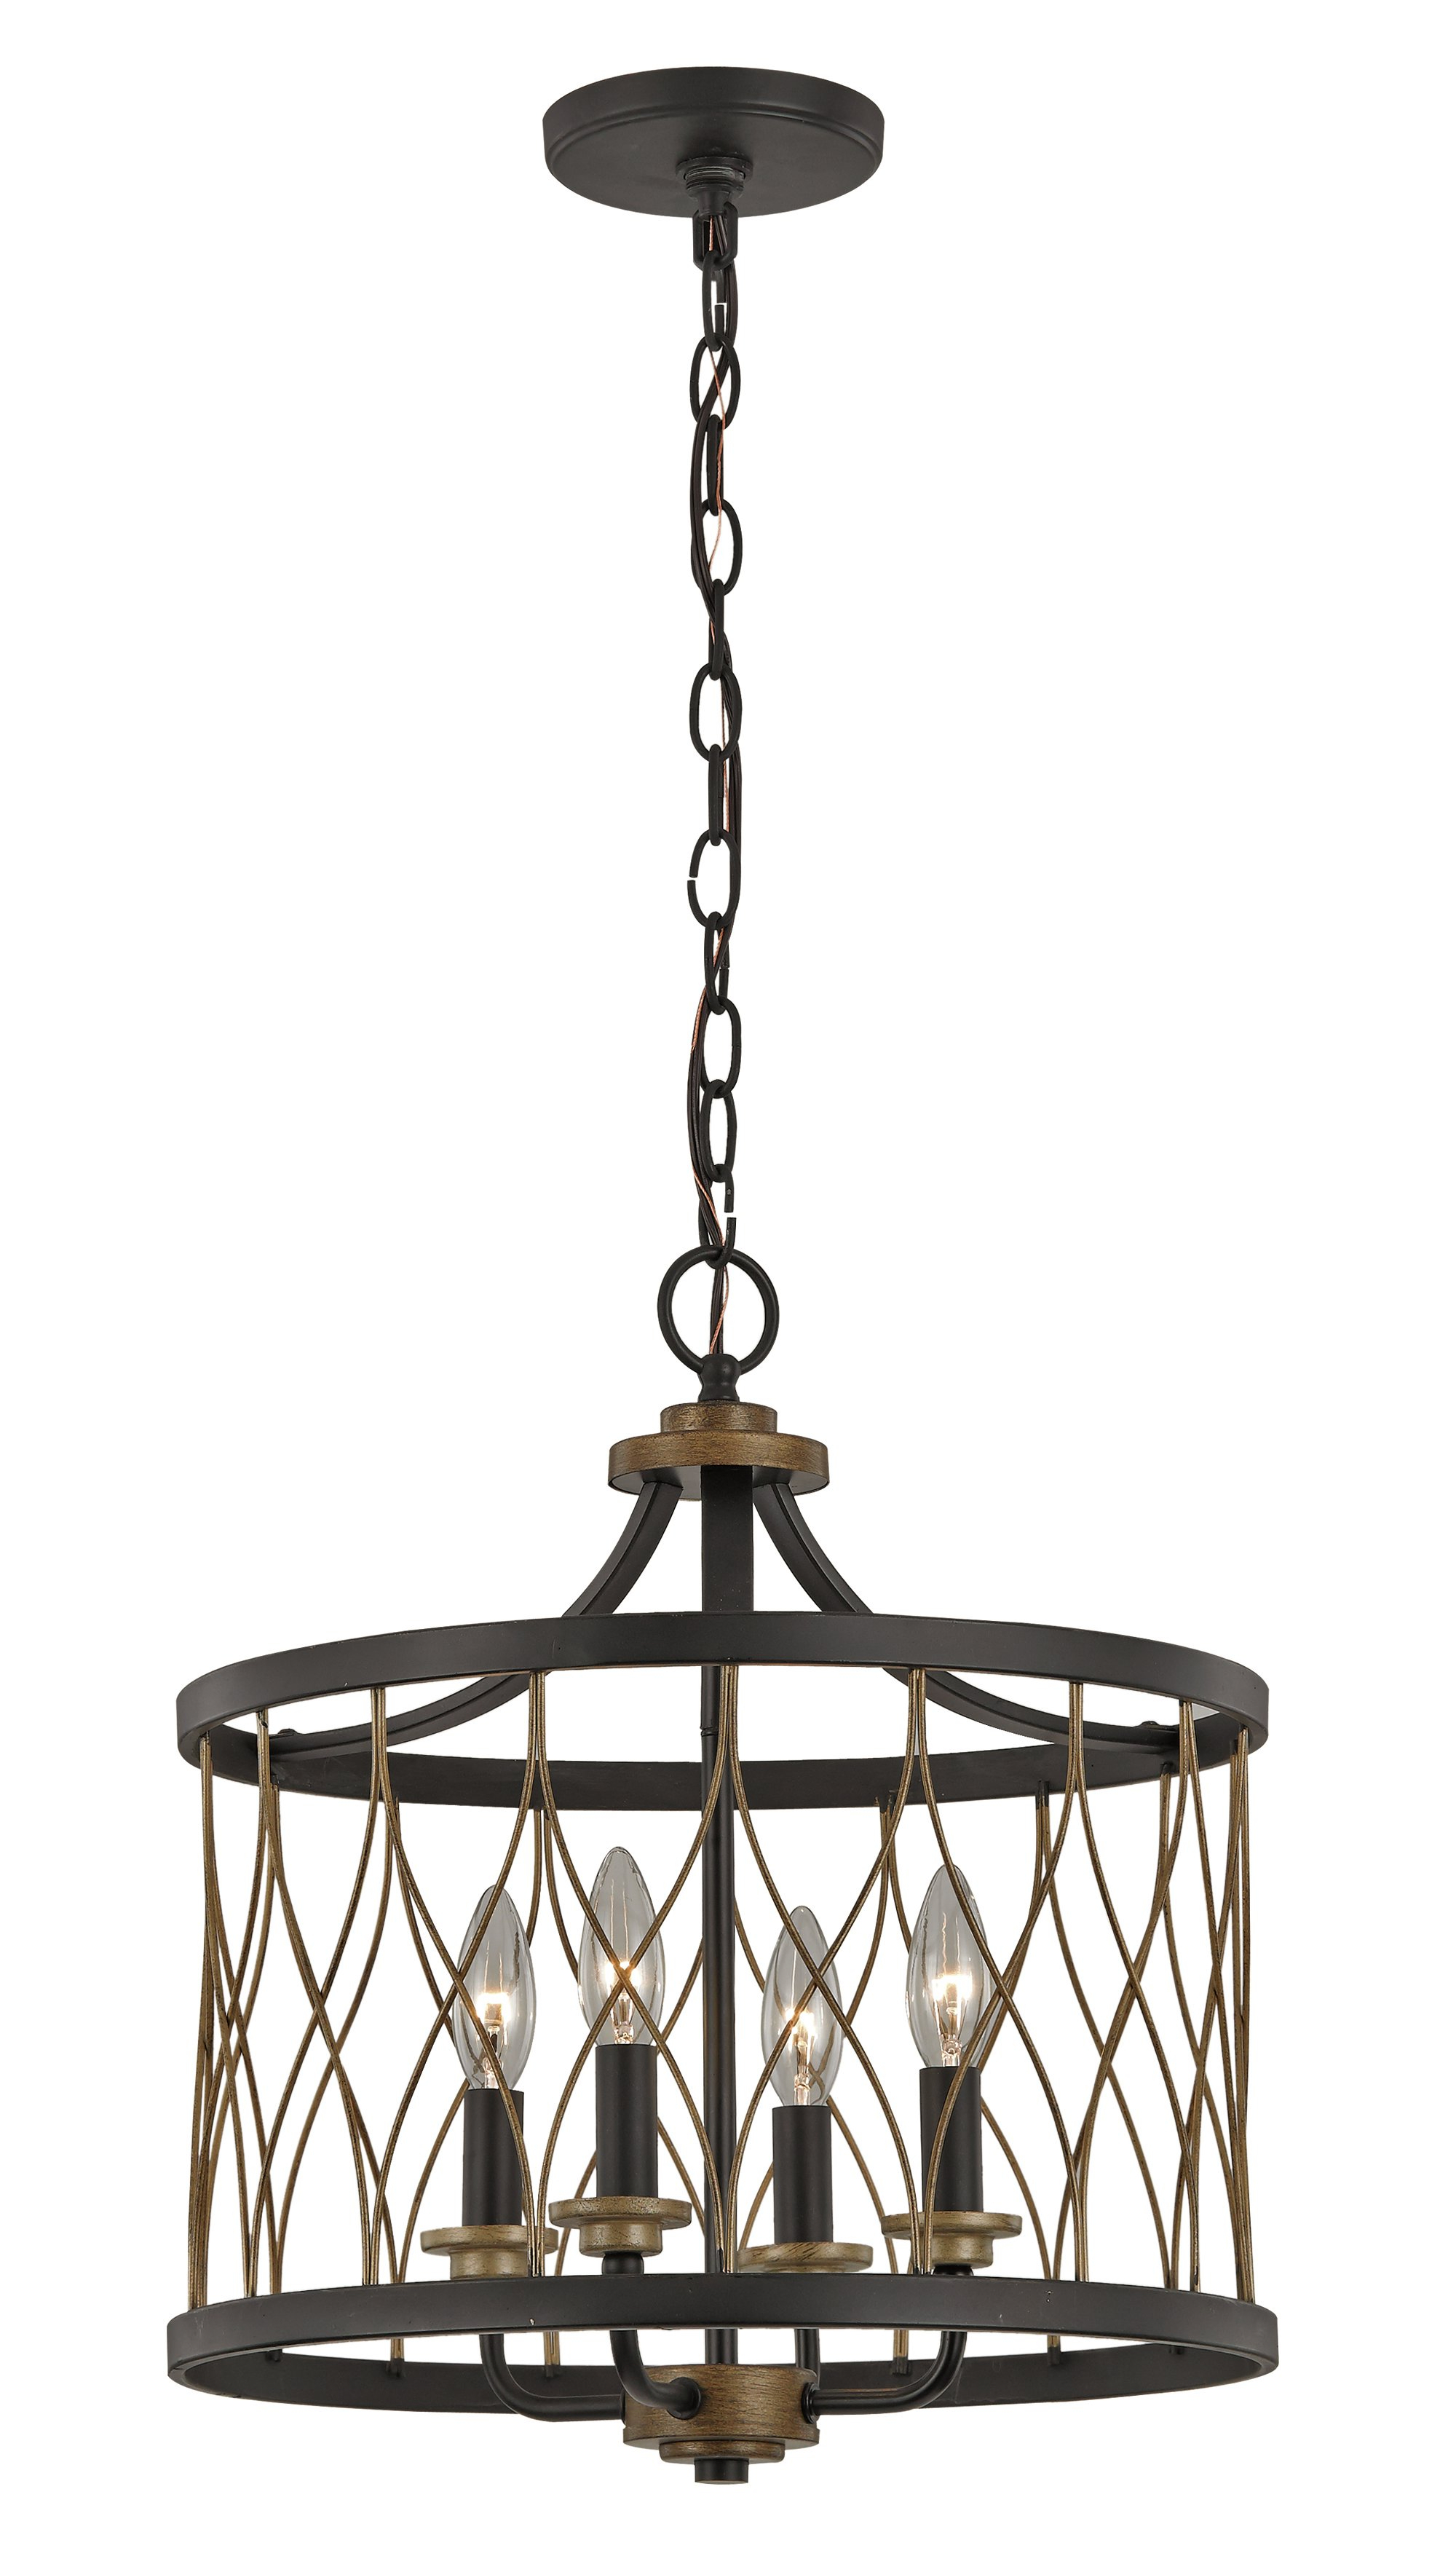 Emaria 3 Light Single Drum Pendants With Regard To Most Recent Drum Pendant With Chain (Gallery 15 of 25)